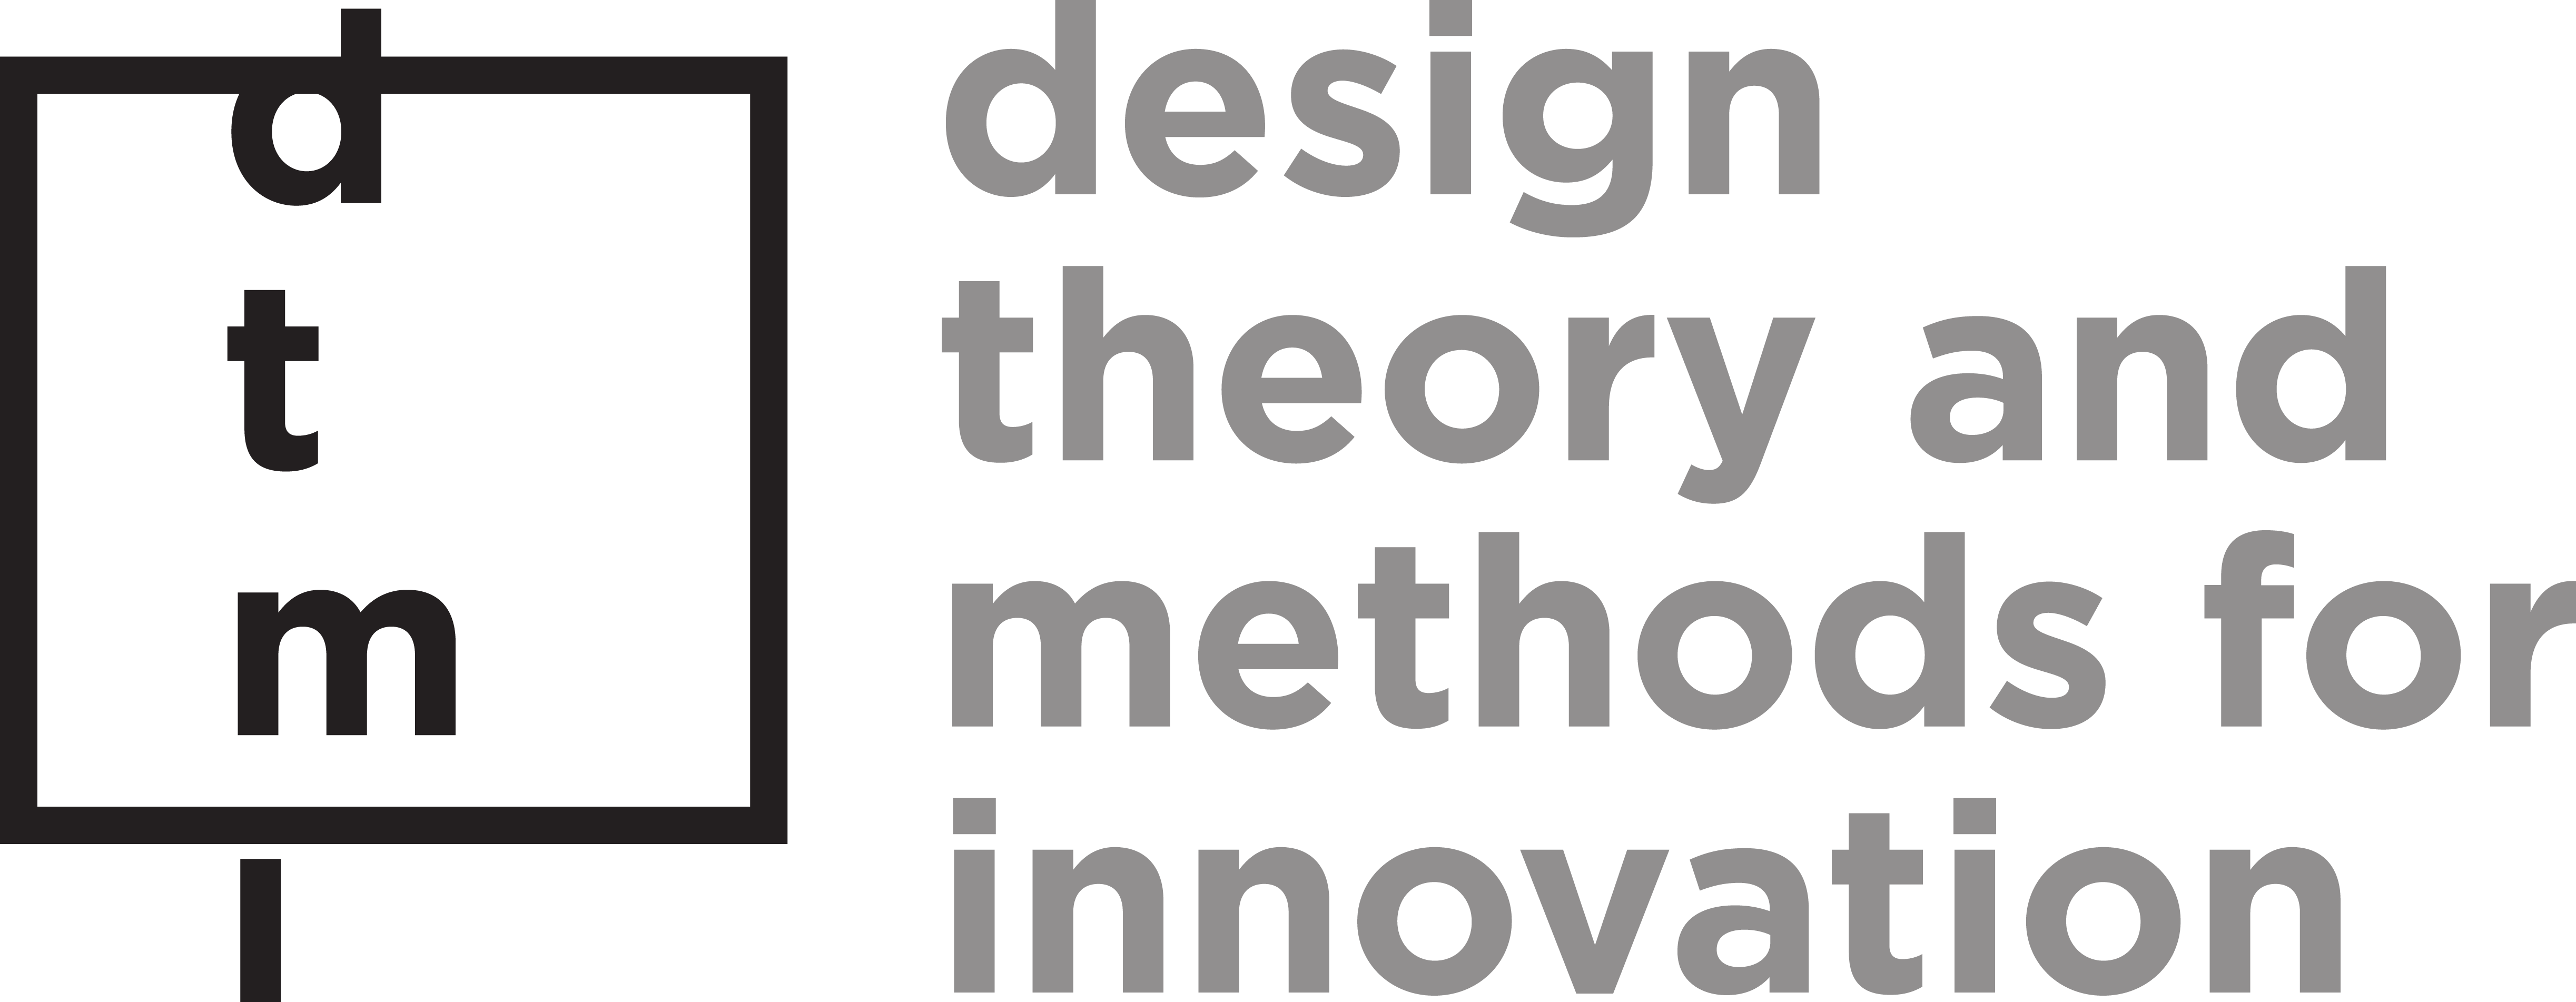 Chair of Design Theory and Methods for Innovation